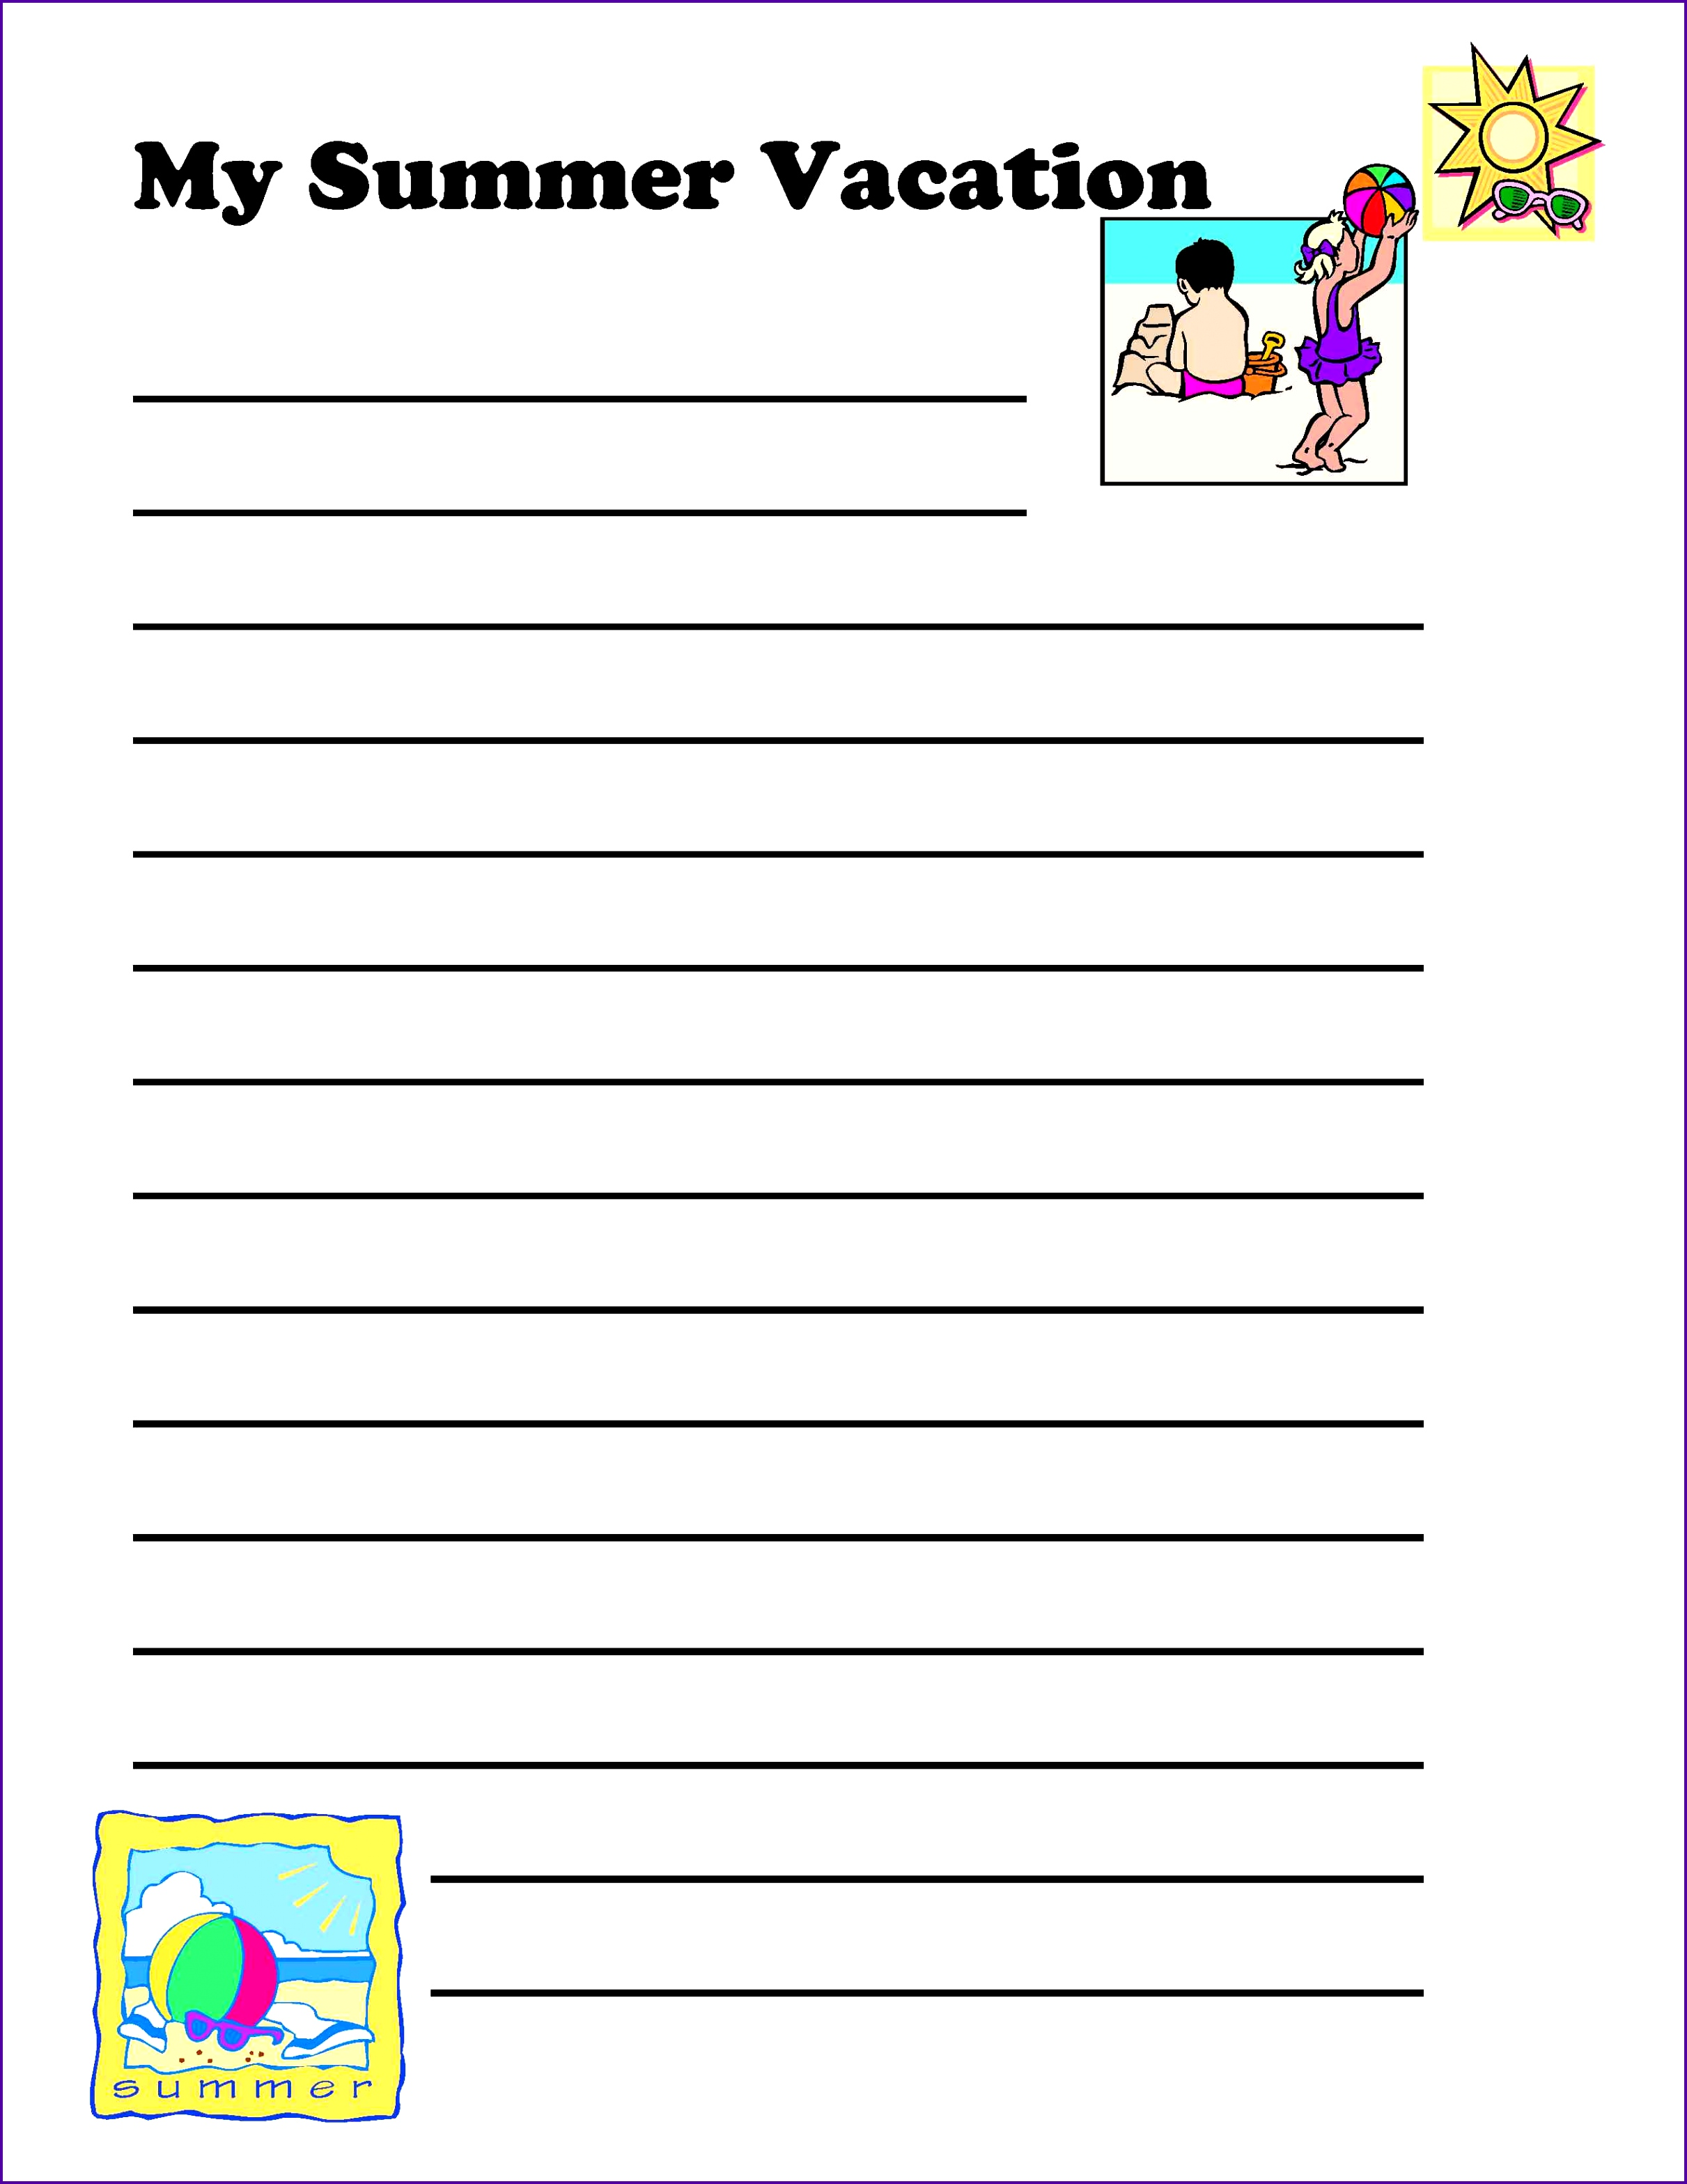 025 Summer Vacation Essay Holiday Planner Template For Admission Writing Plan Euyozr New Frightening Class 6 In Urdu On Marathi Full